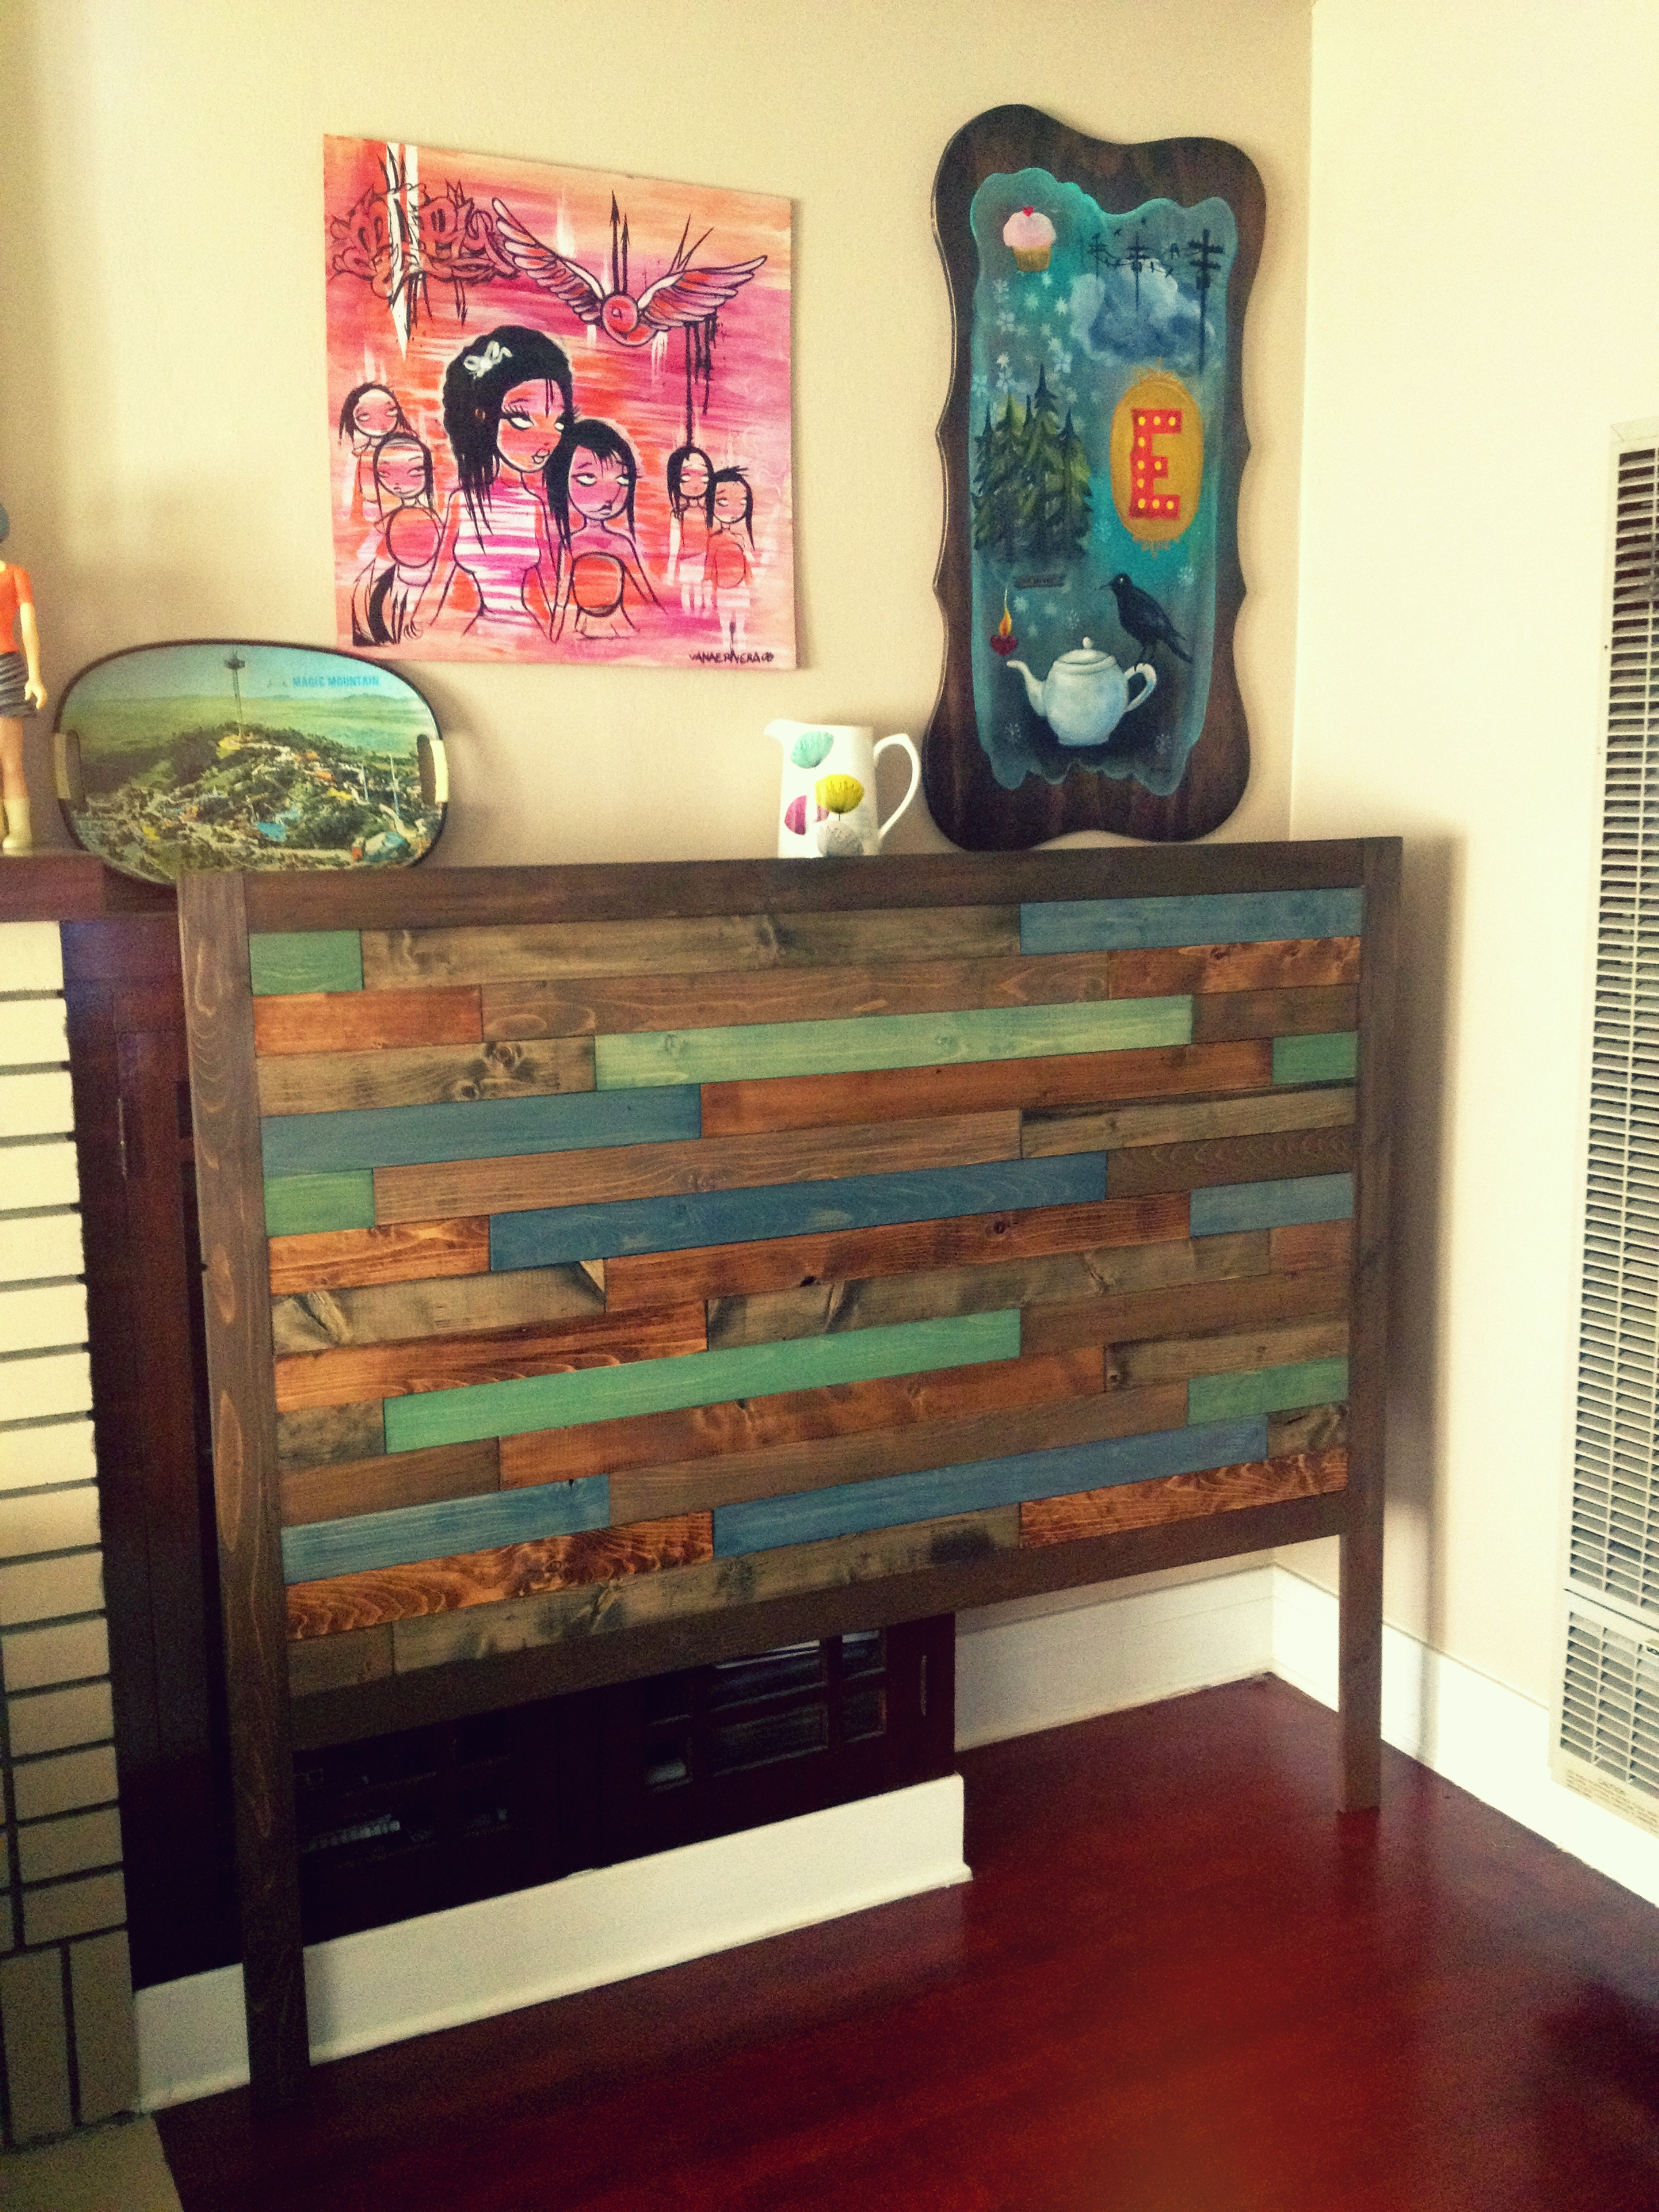 Homemade Headboards With Nice Pictures Above And Natural Brown Floor